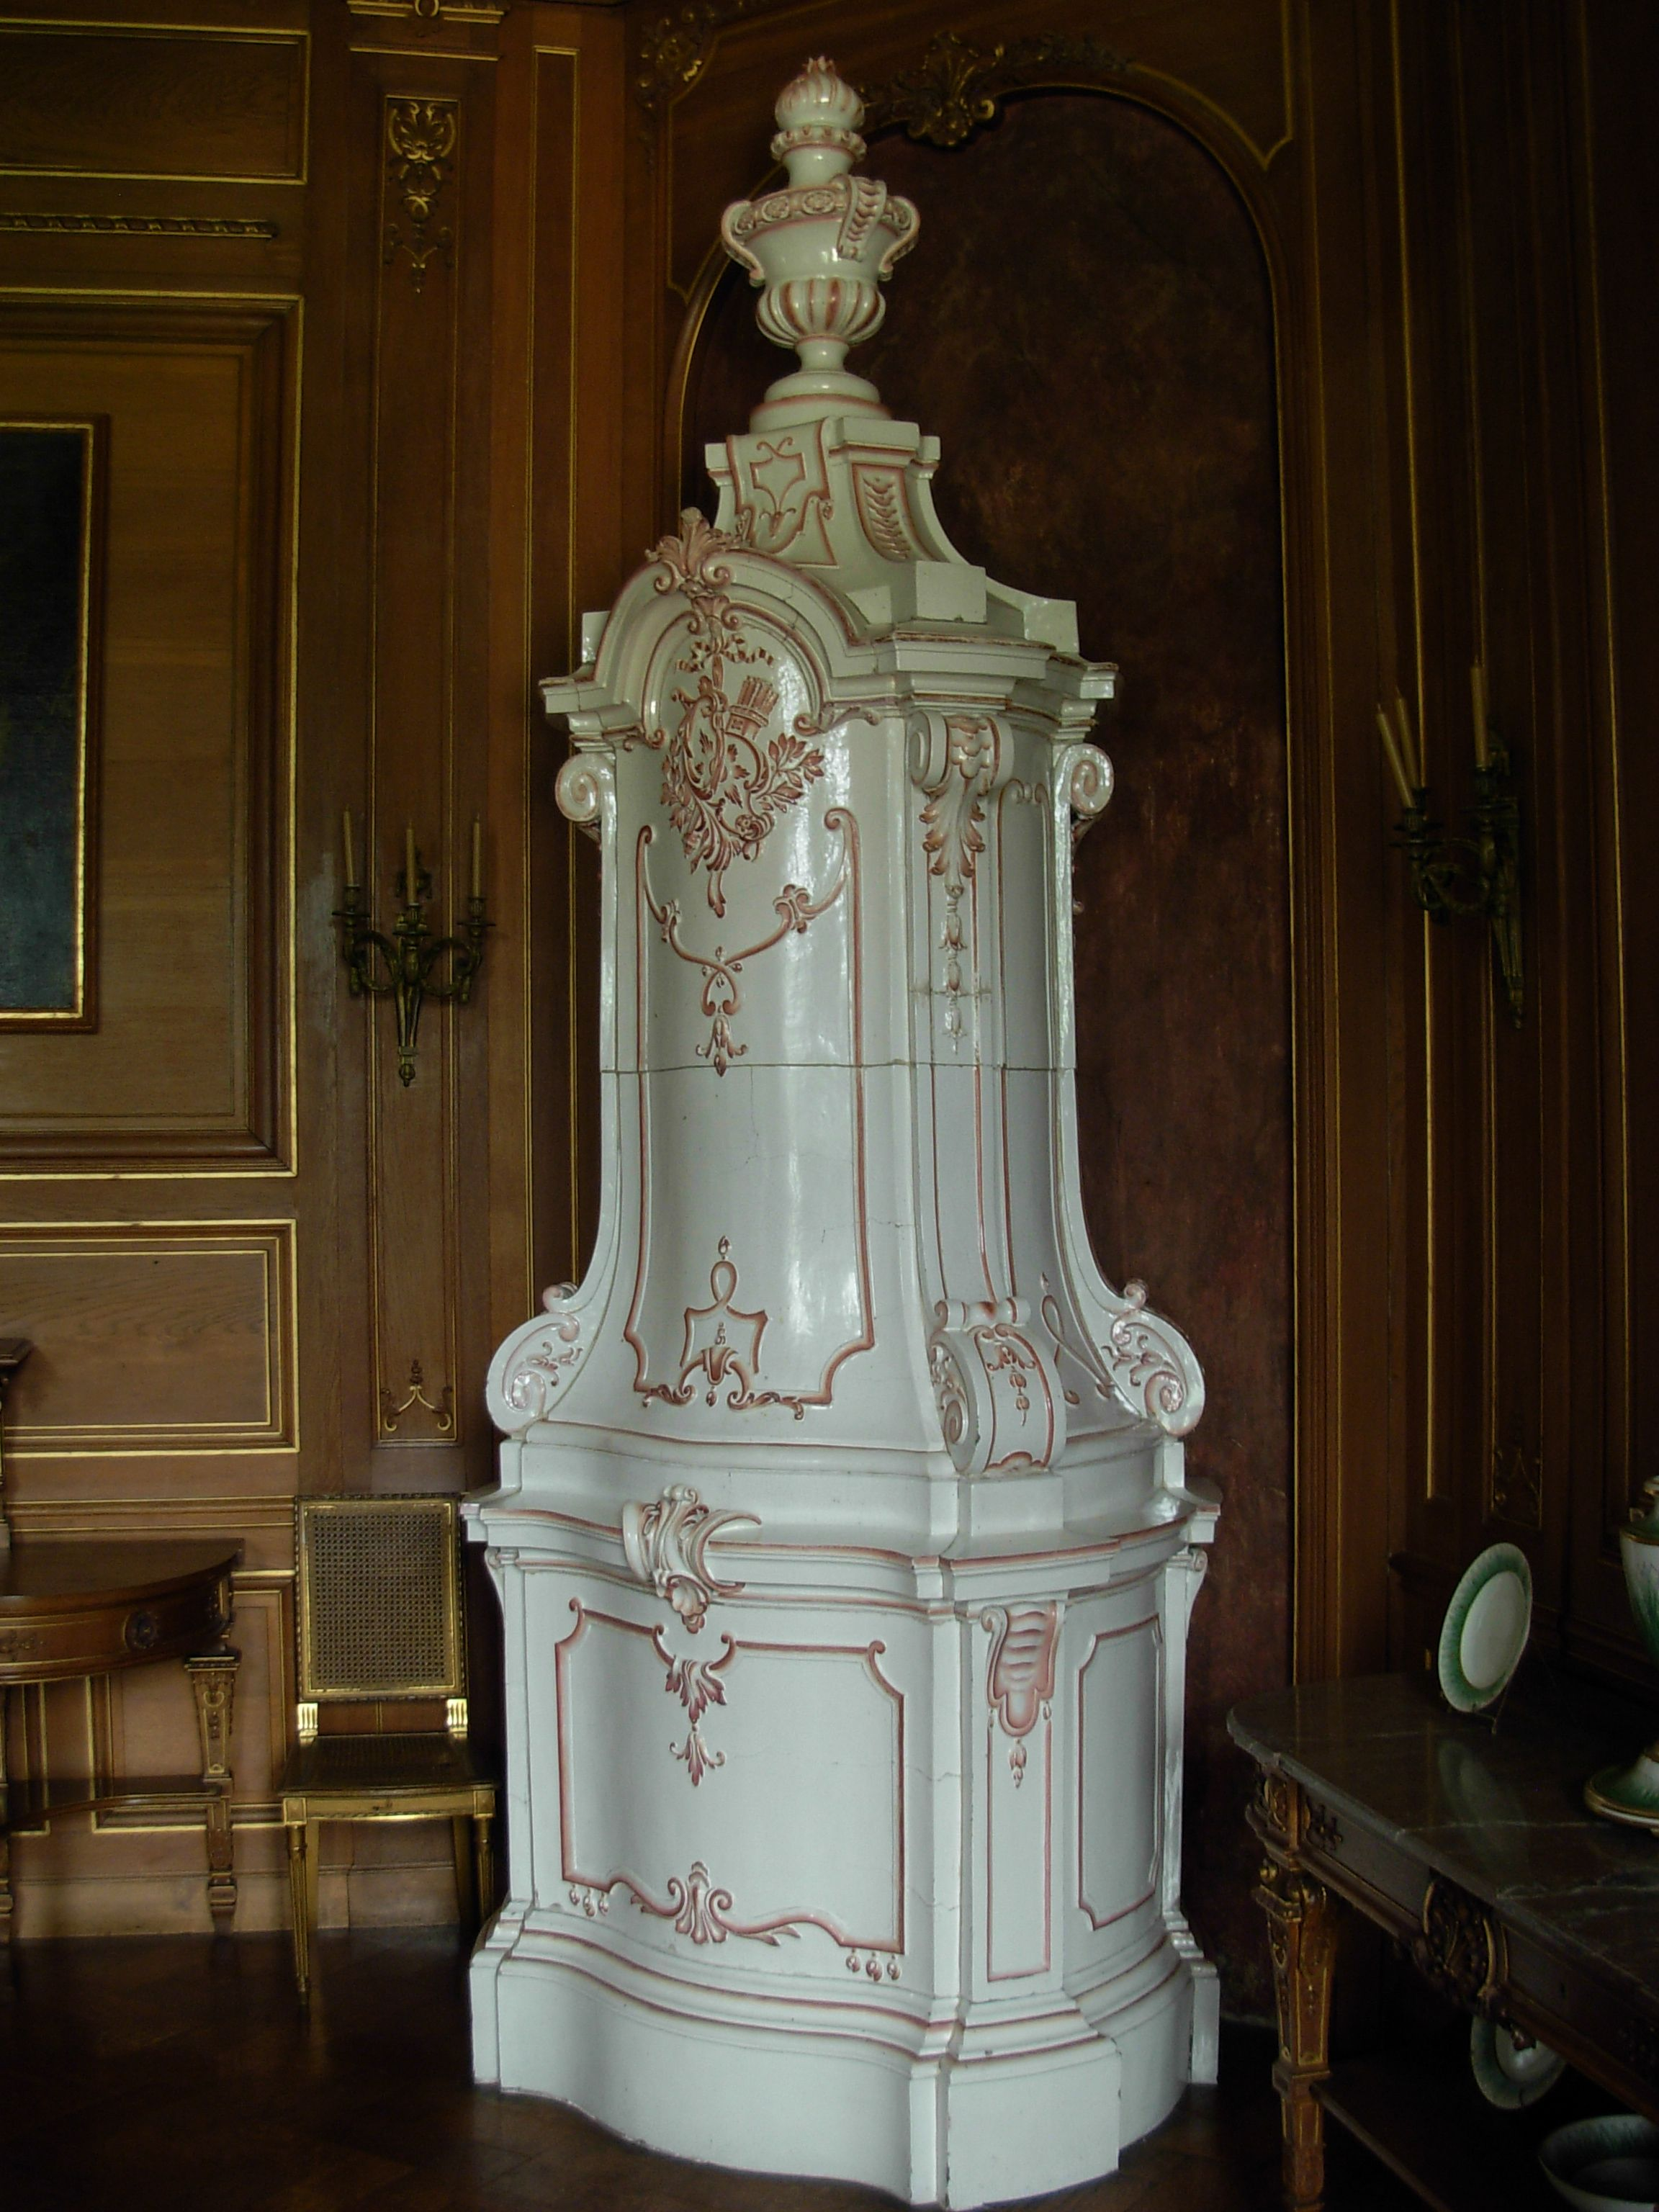 Ceramic Stoves Are Traditional In Northern Europe An 18th